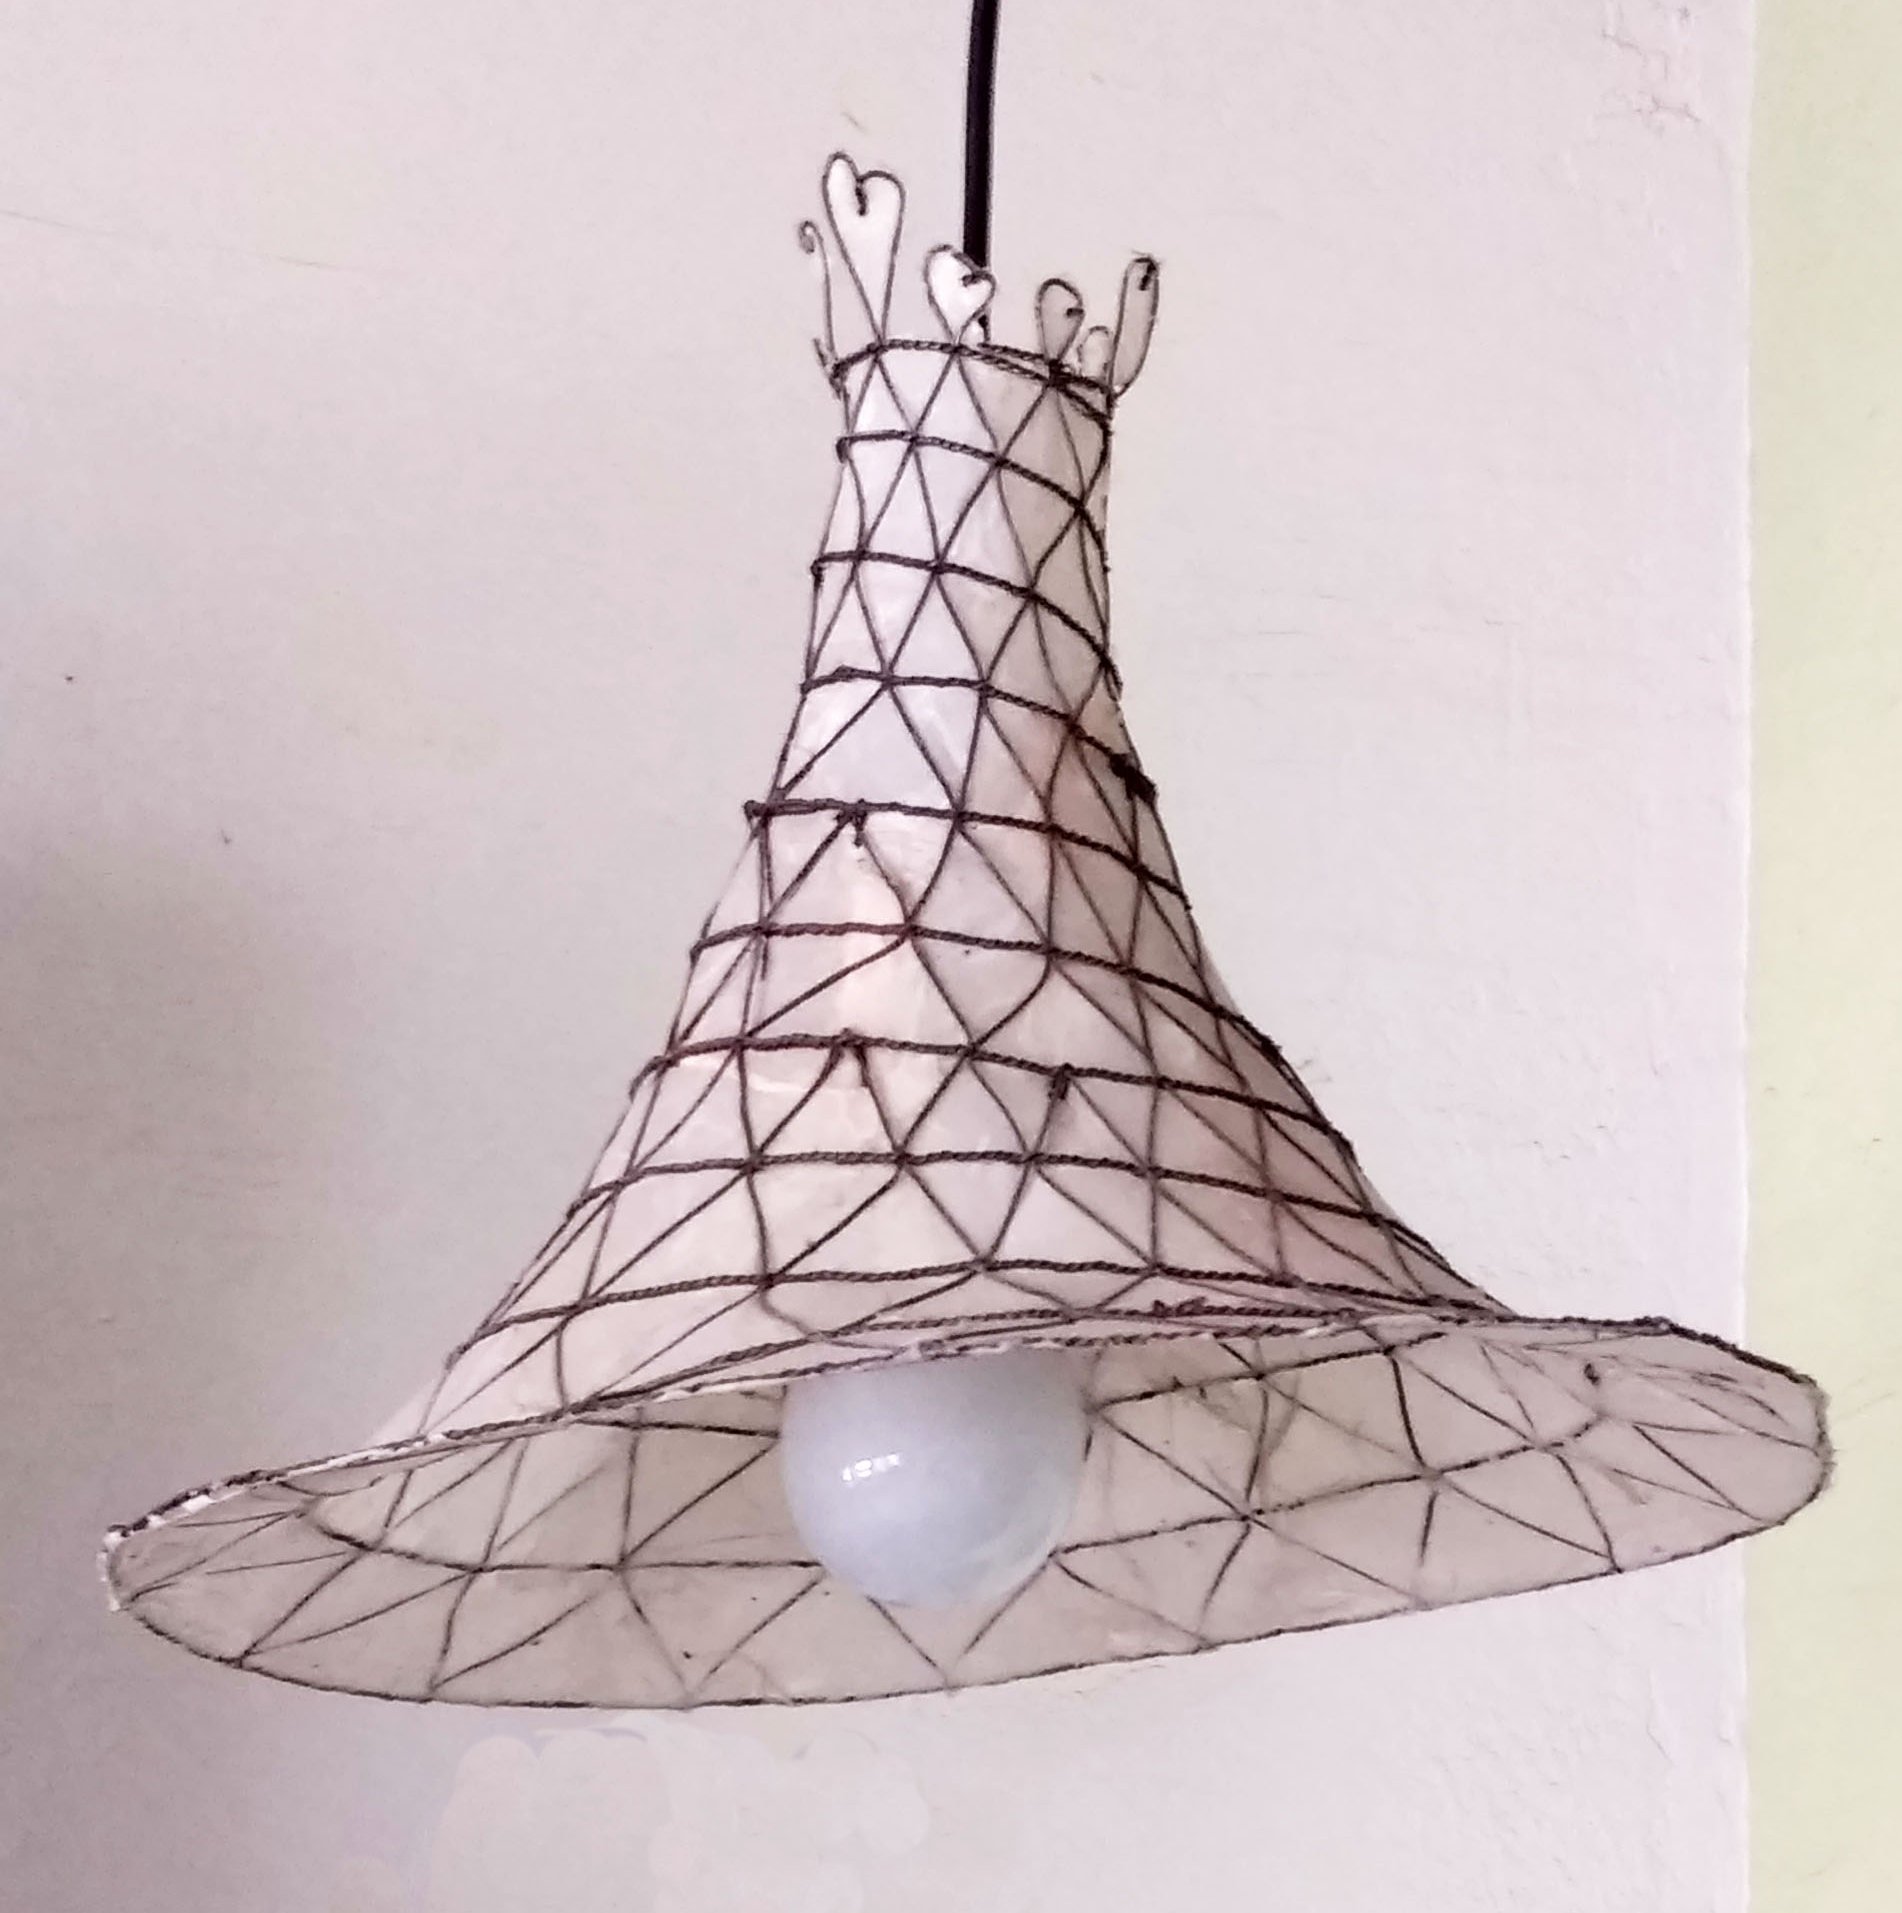 This flared pendant light has a creamy-colored natural rice paper under a woven steel wire net.